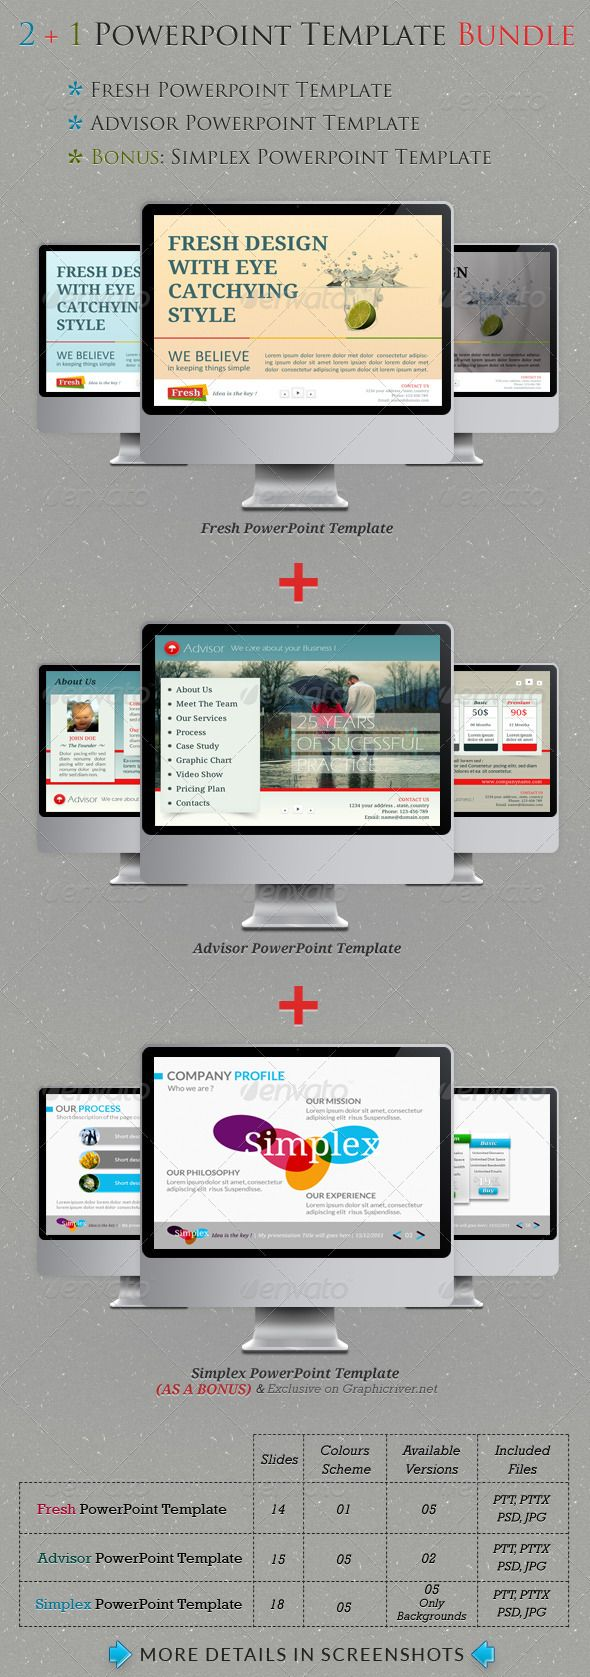 31 best Powerpoint Templates images on Pinterest | Powerpoint ...